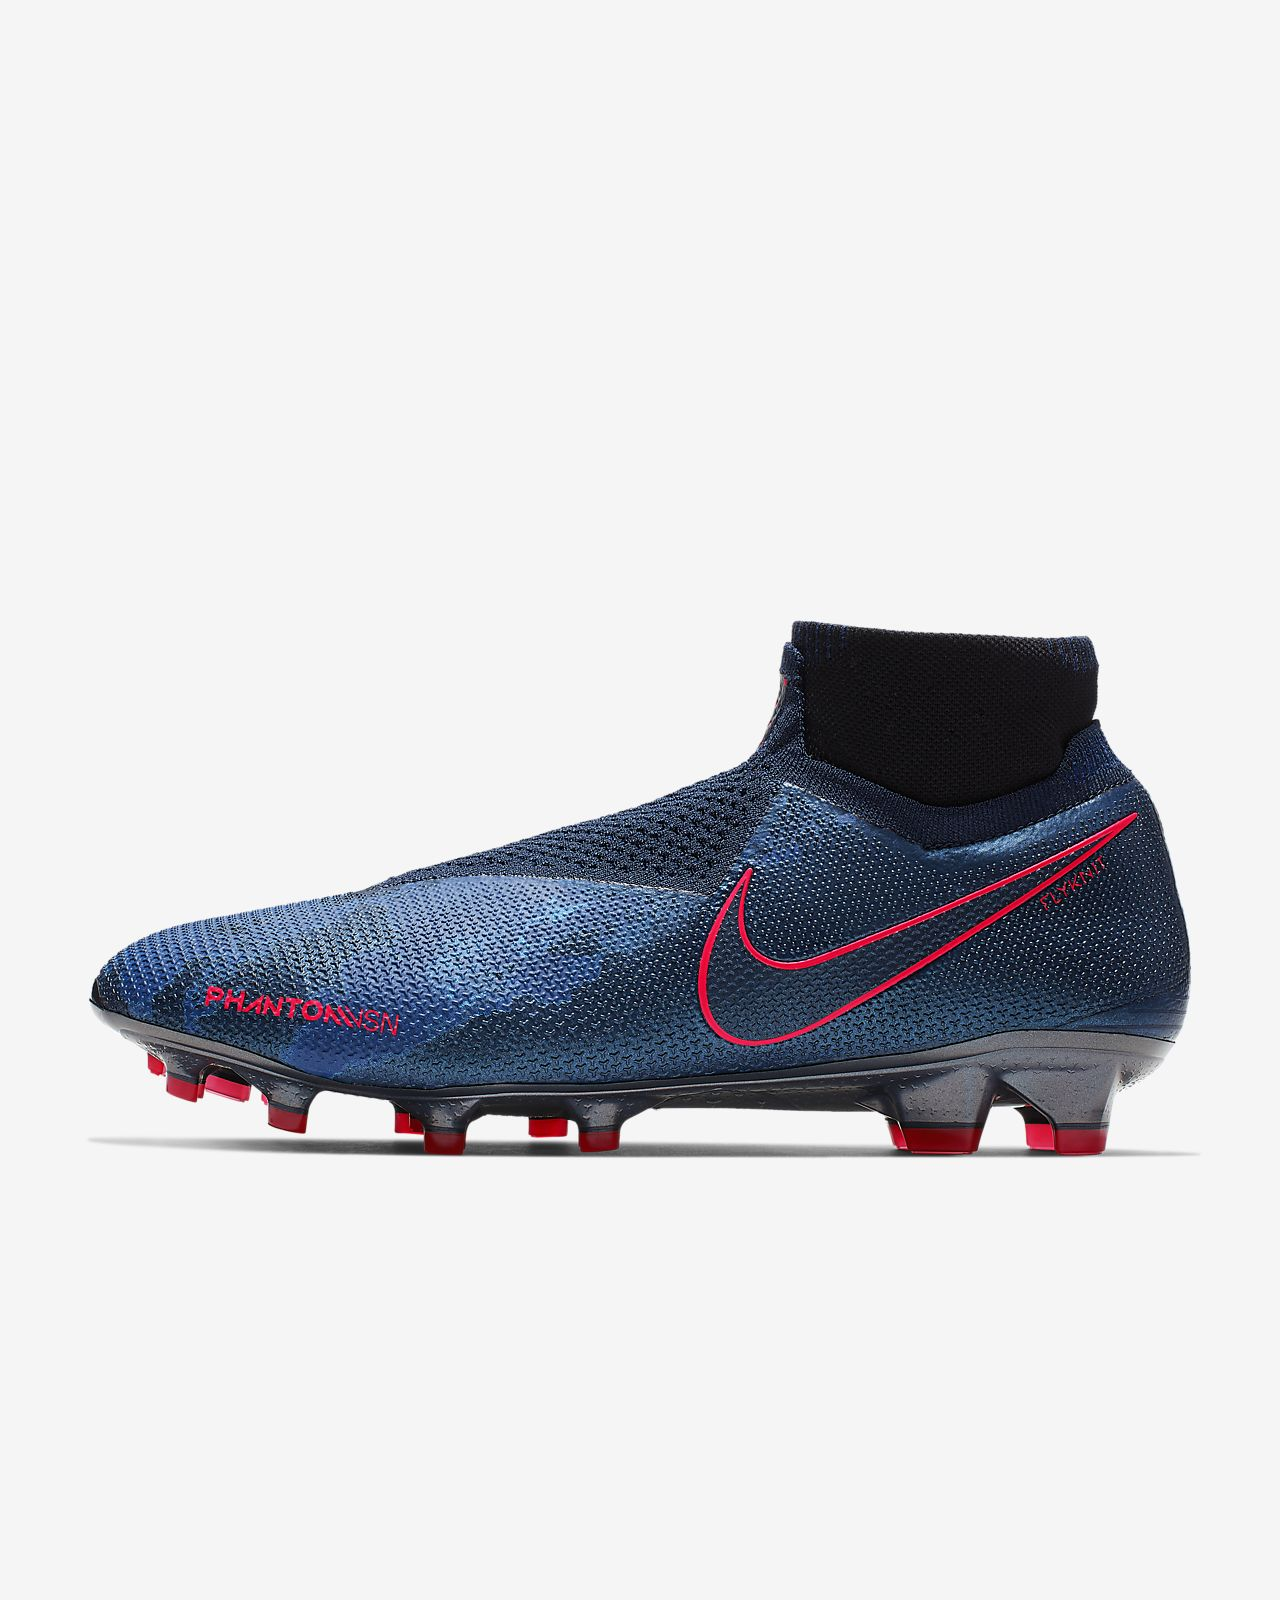 aa3903773 Nike Phantom Vision Elite Dynamic Fit FG Firm-Ground Football Boot ...